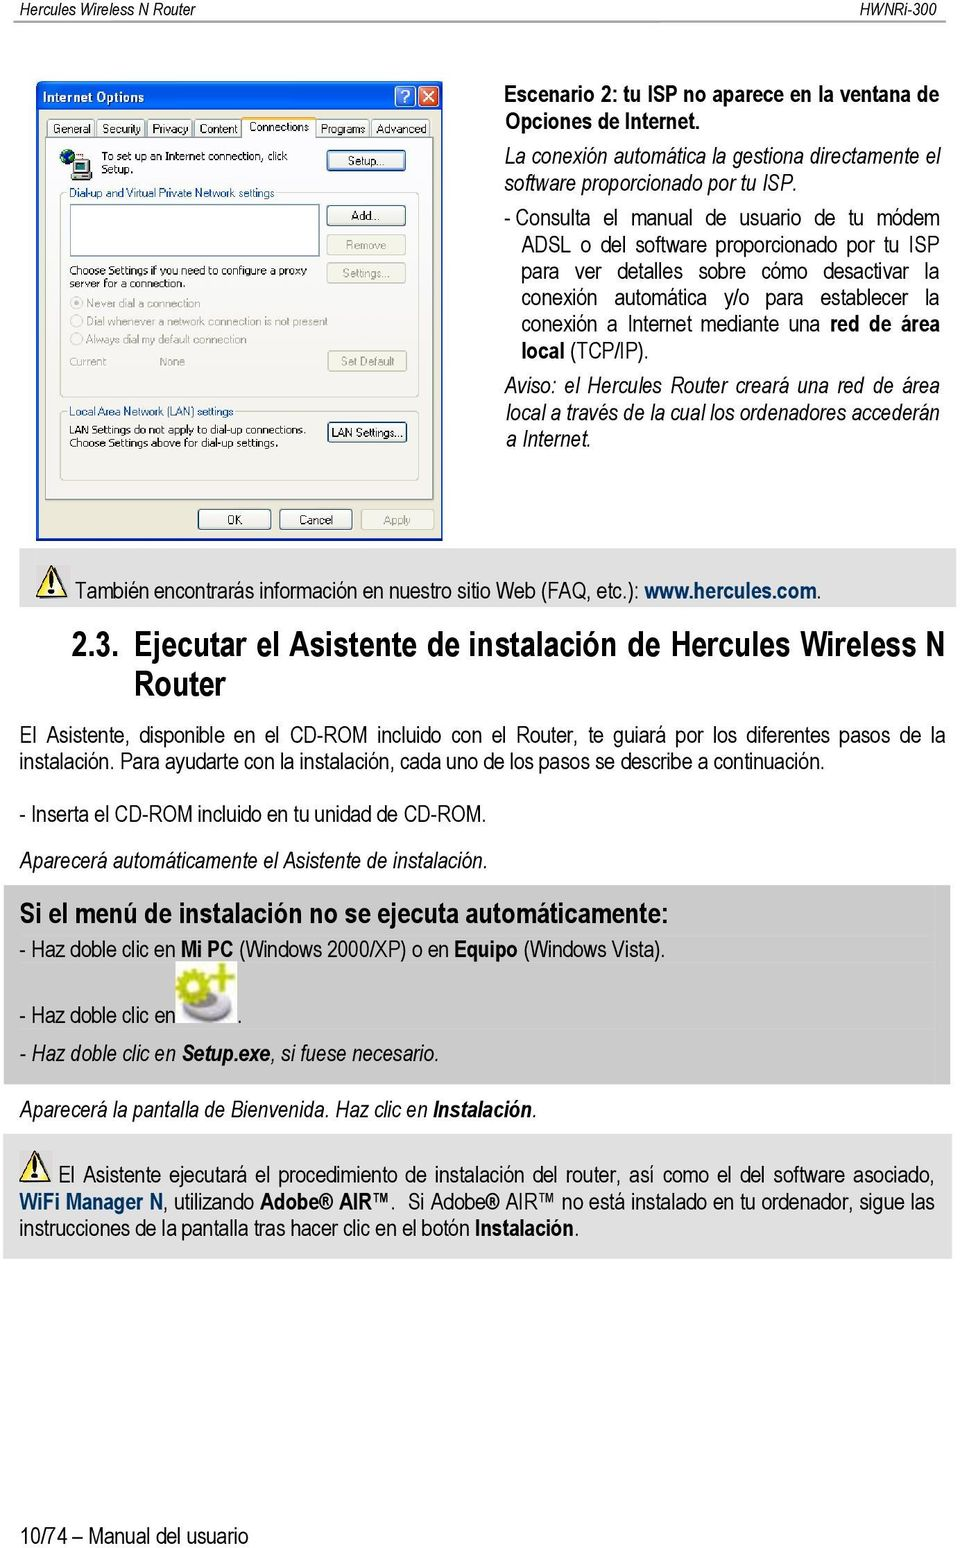 mediante una red de área local (TCP/IP). Aviso: el Hercules Router creará una red de área local a través de la cual los ordenadores accederán a Internet.